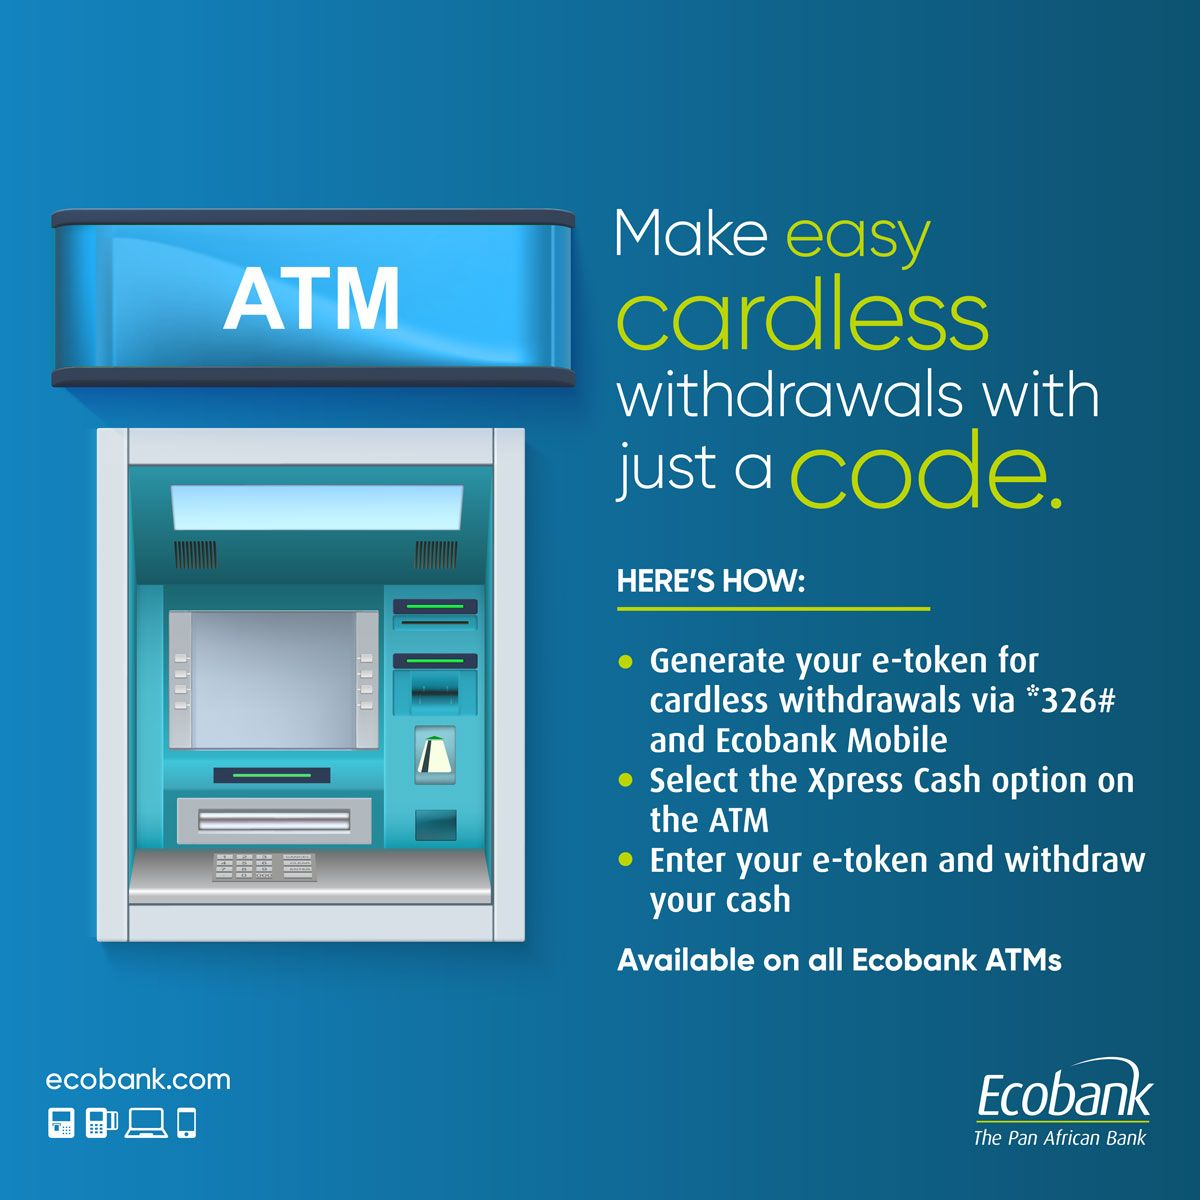 How To Get Money From An Atm Without Your Card